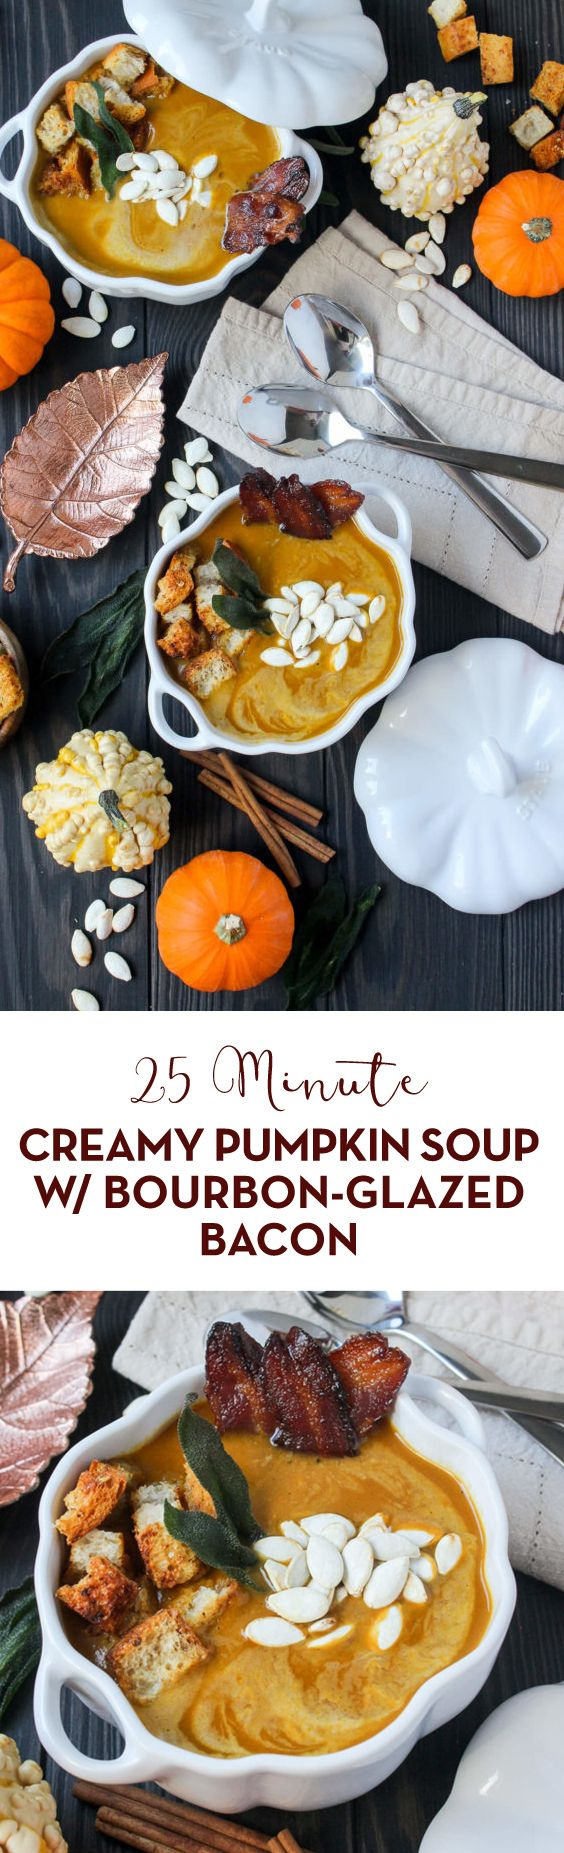 Ready in just 30 minutes, this outrageously easy Creamy Pumpkin Soup w/ Bourbon-Glazed Bacon is perfect for Thanksgiving and beyond! #soup #souprecipes #comfortfood #bacon #bourbon #dinnerideas #pumpkin #pumpkinsoup #fallrecipes #winterrecipes